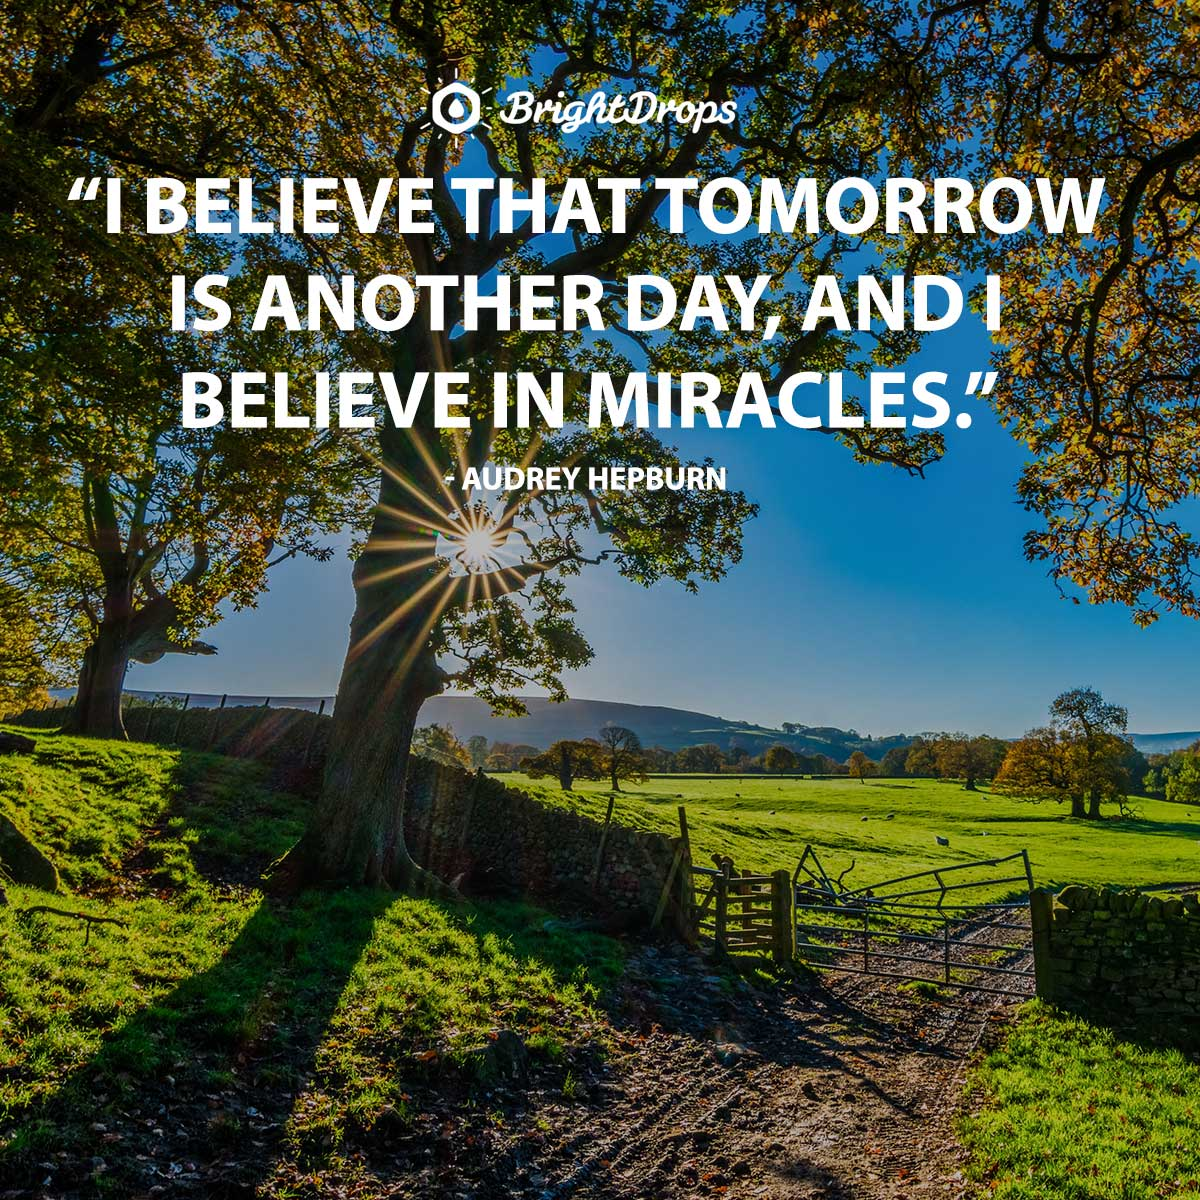 I believe that tomorrow is another day, and I believe in miracles. - Audrey Hepburn